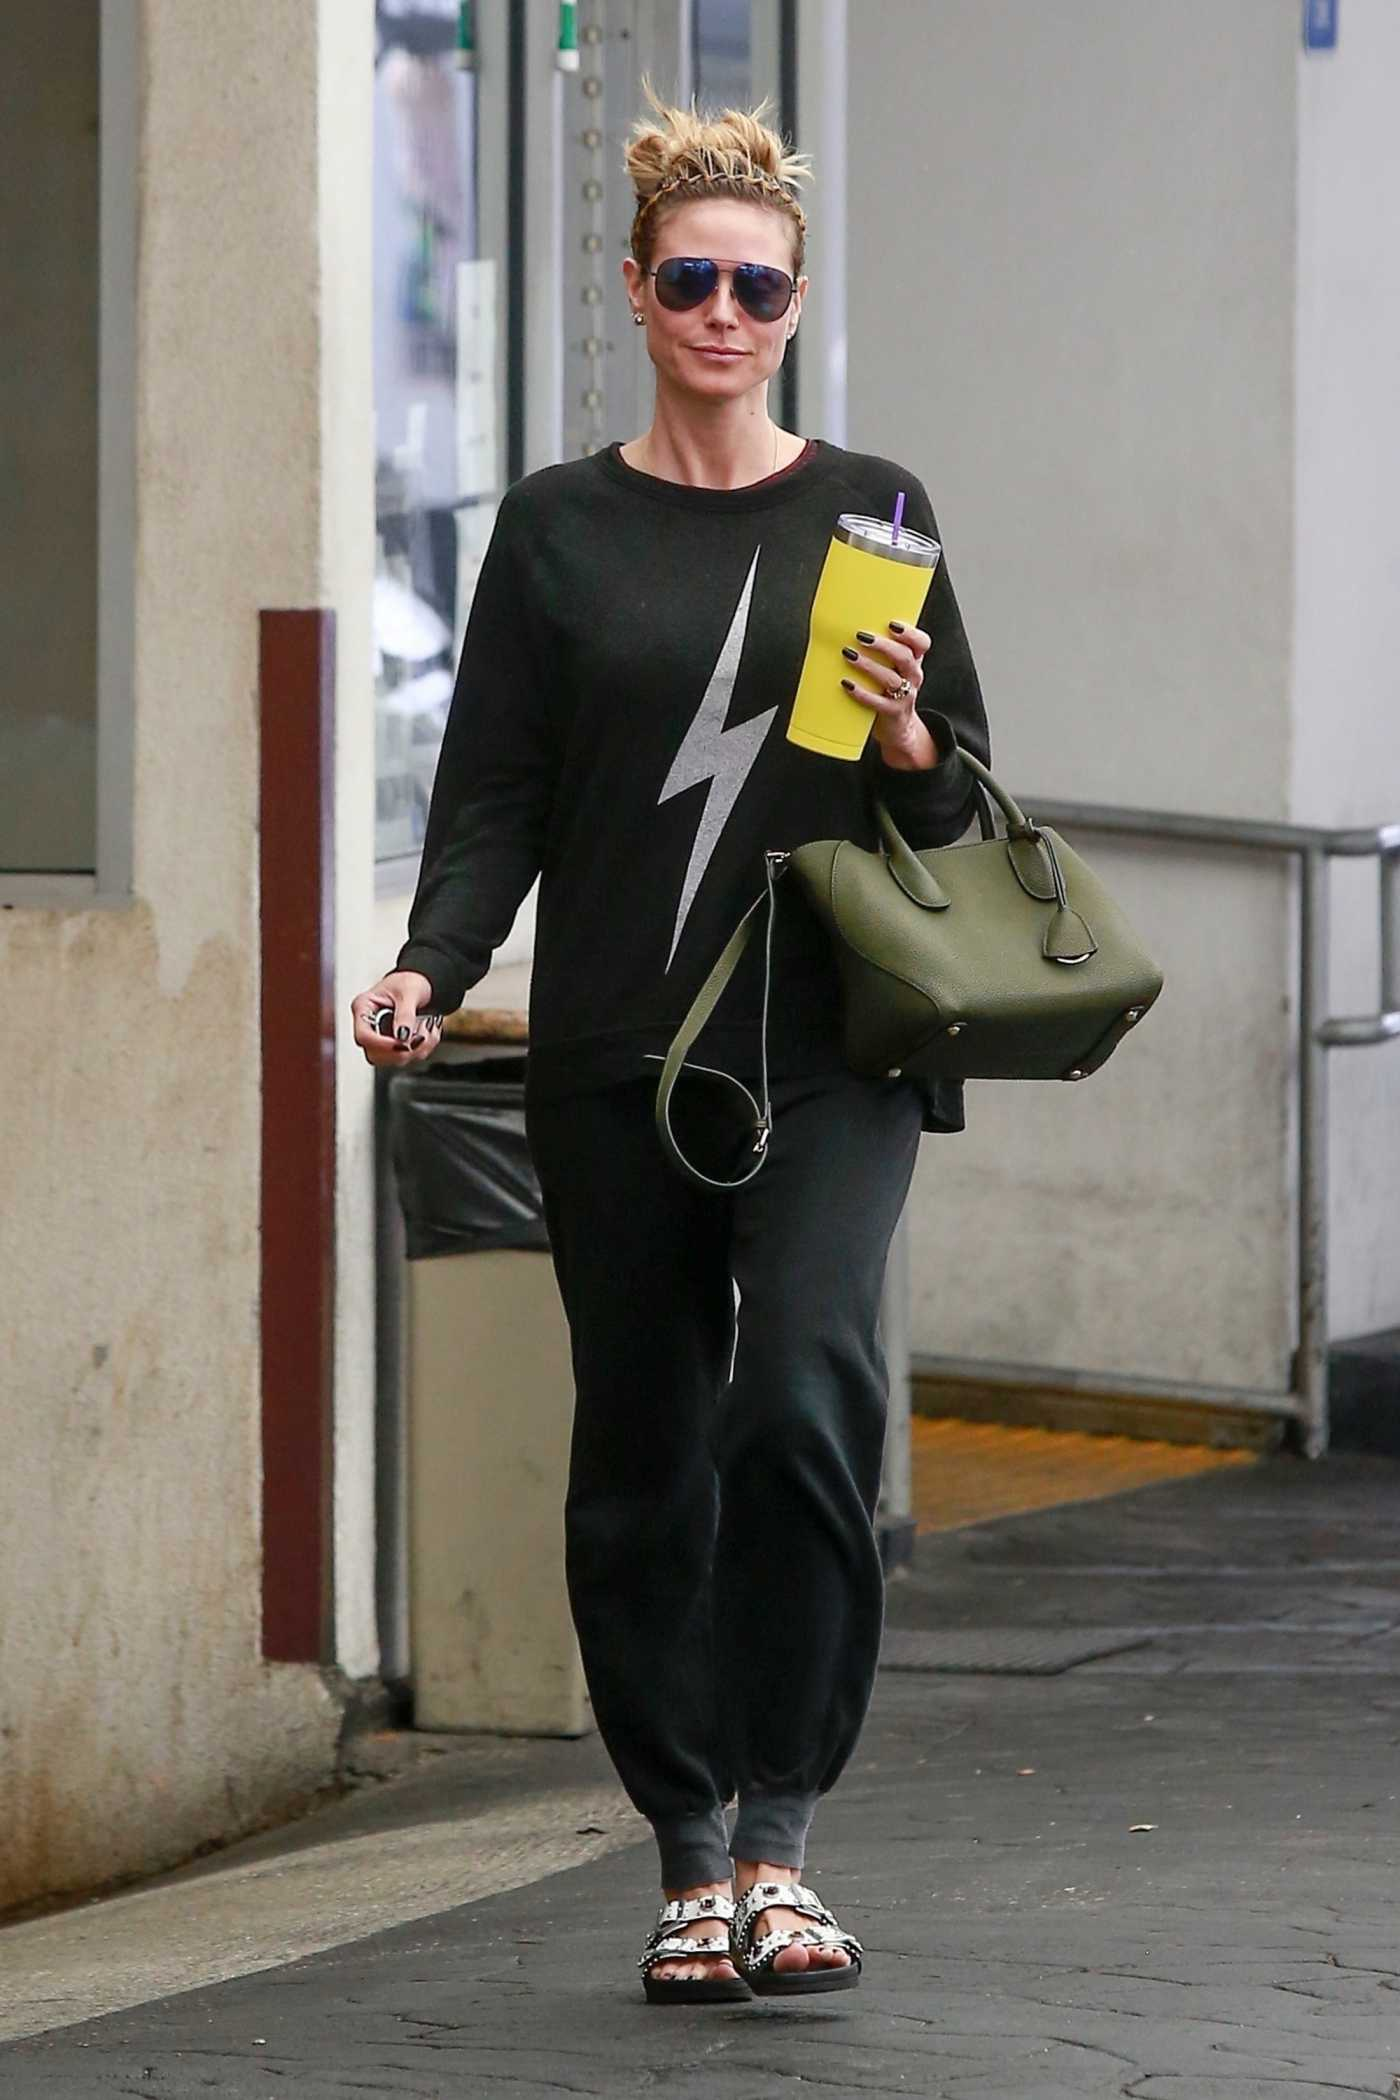 Heidi Klum in a Black Sweatshirt Visits Her Dermatologist in Beverly Hills 05/17/2019